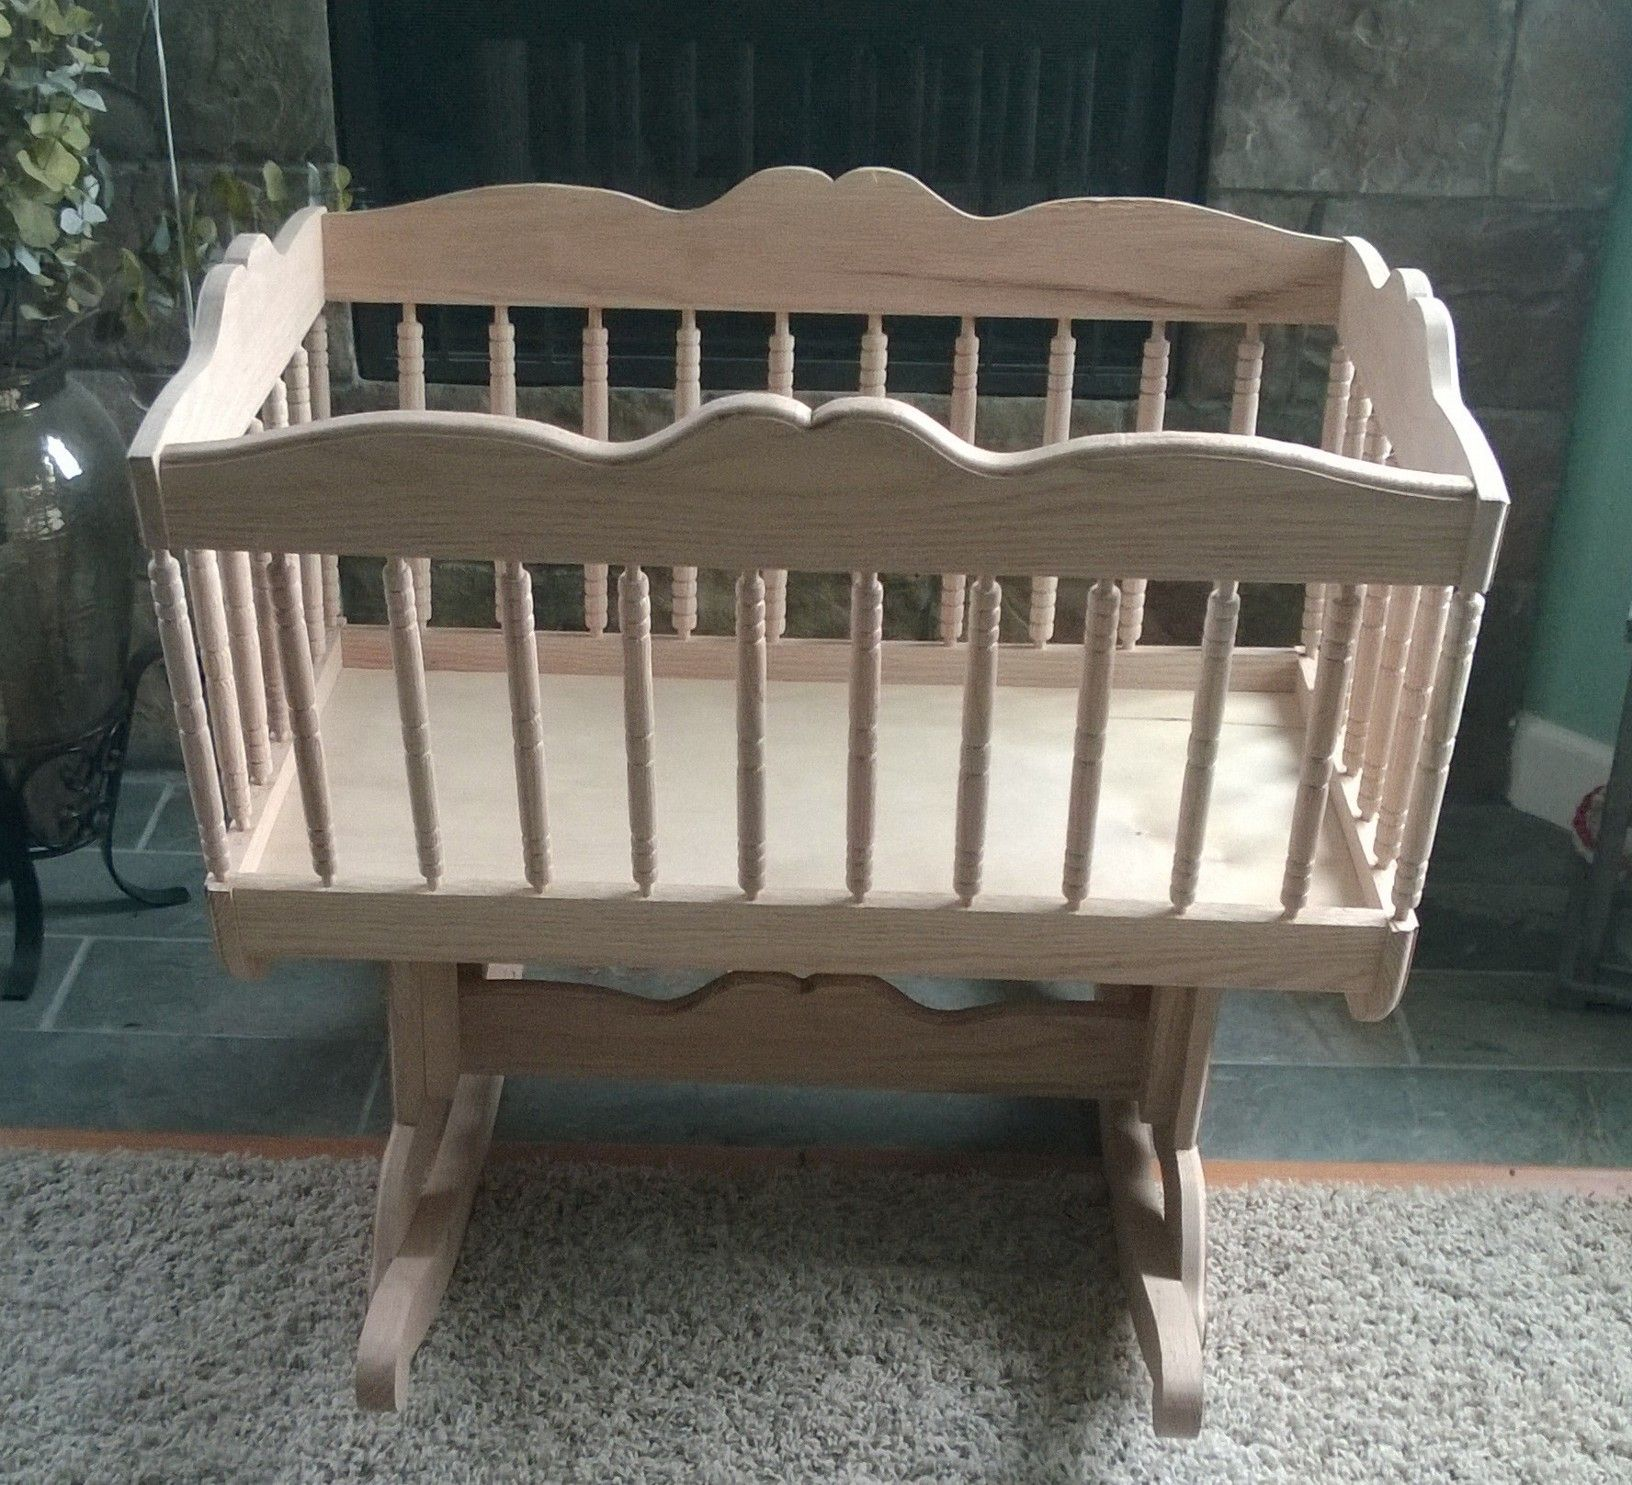 Handcrafted rocking cradle made from solid red oak 34 hand turned spindles